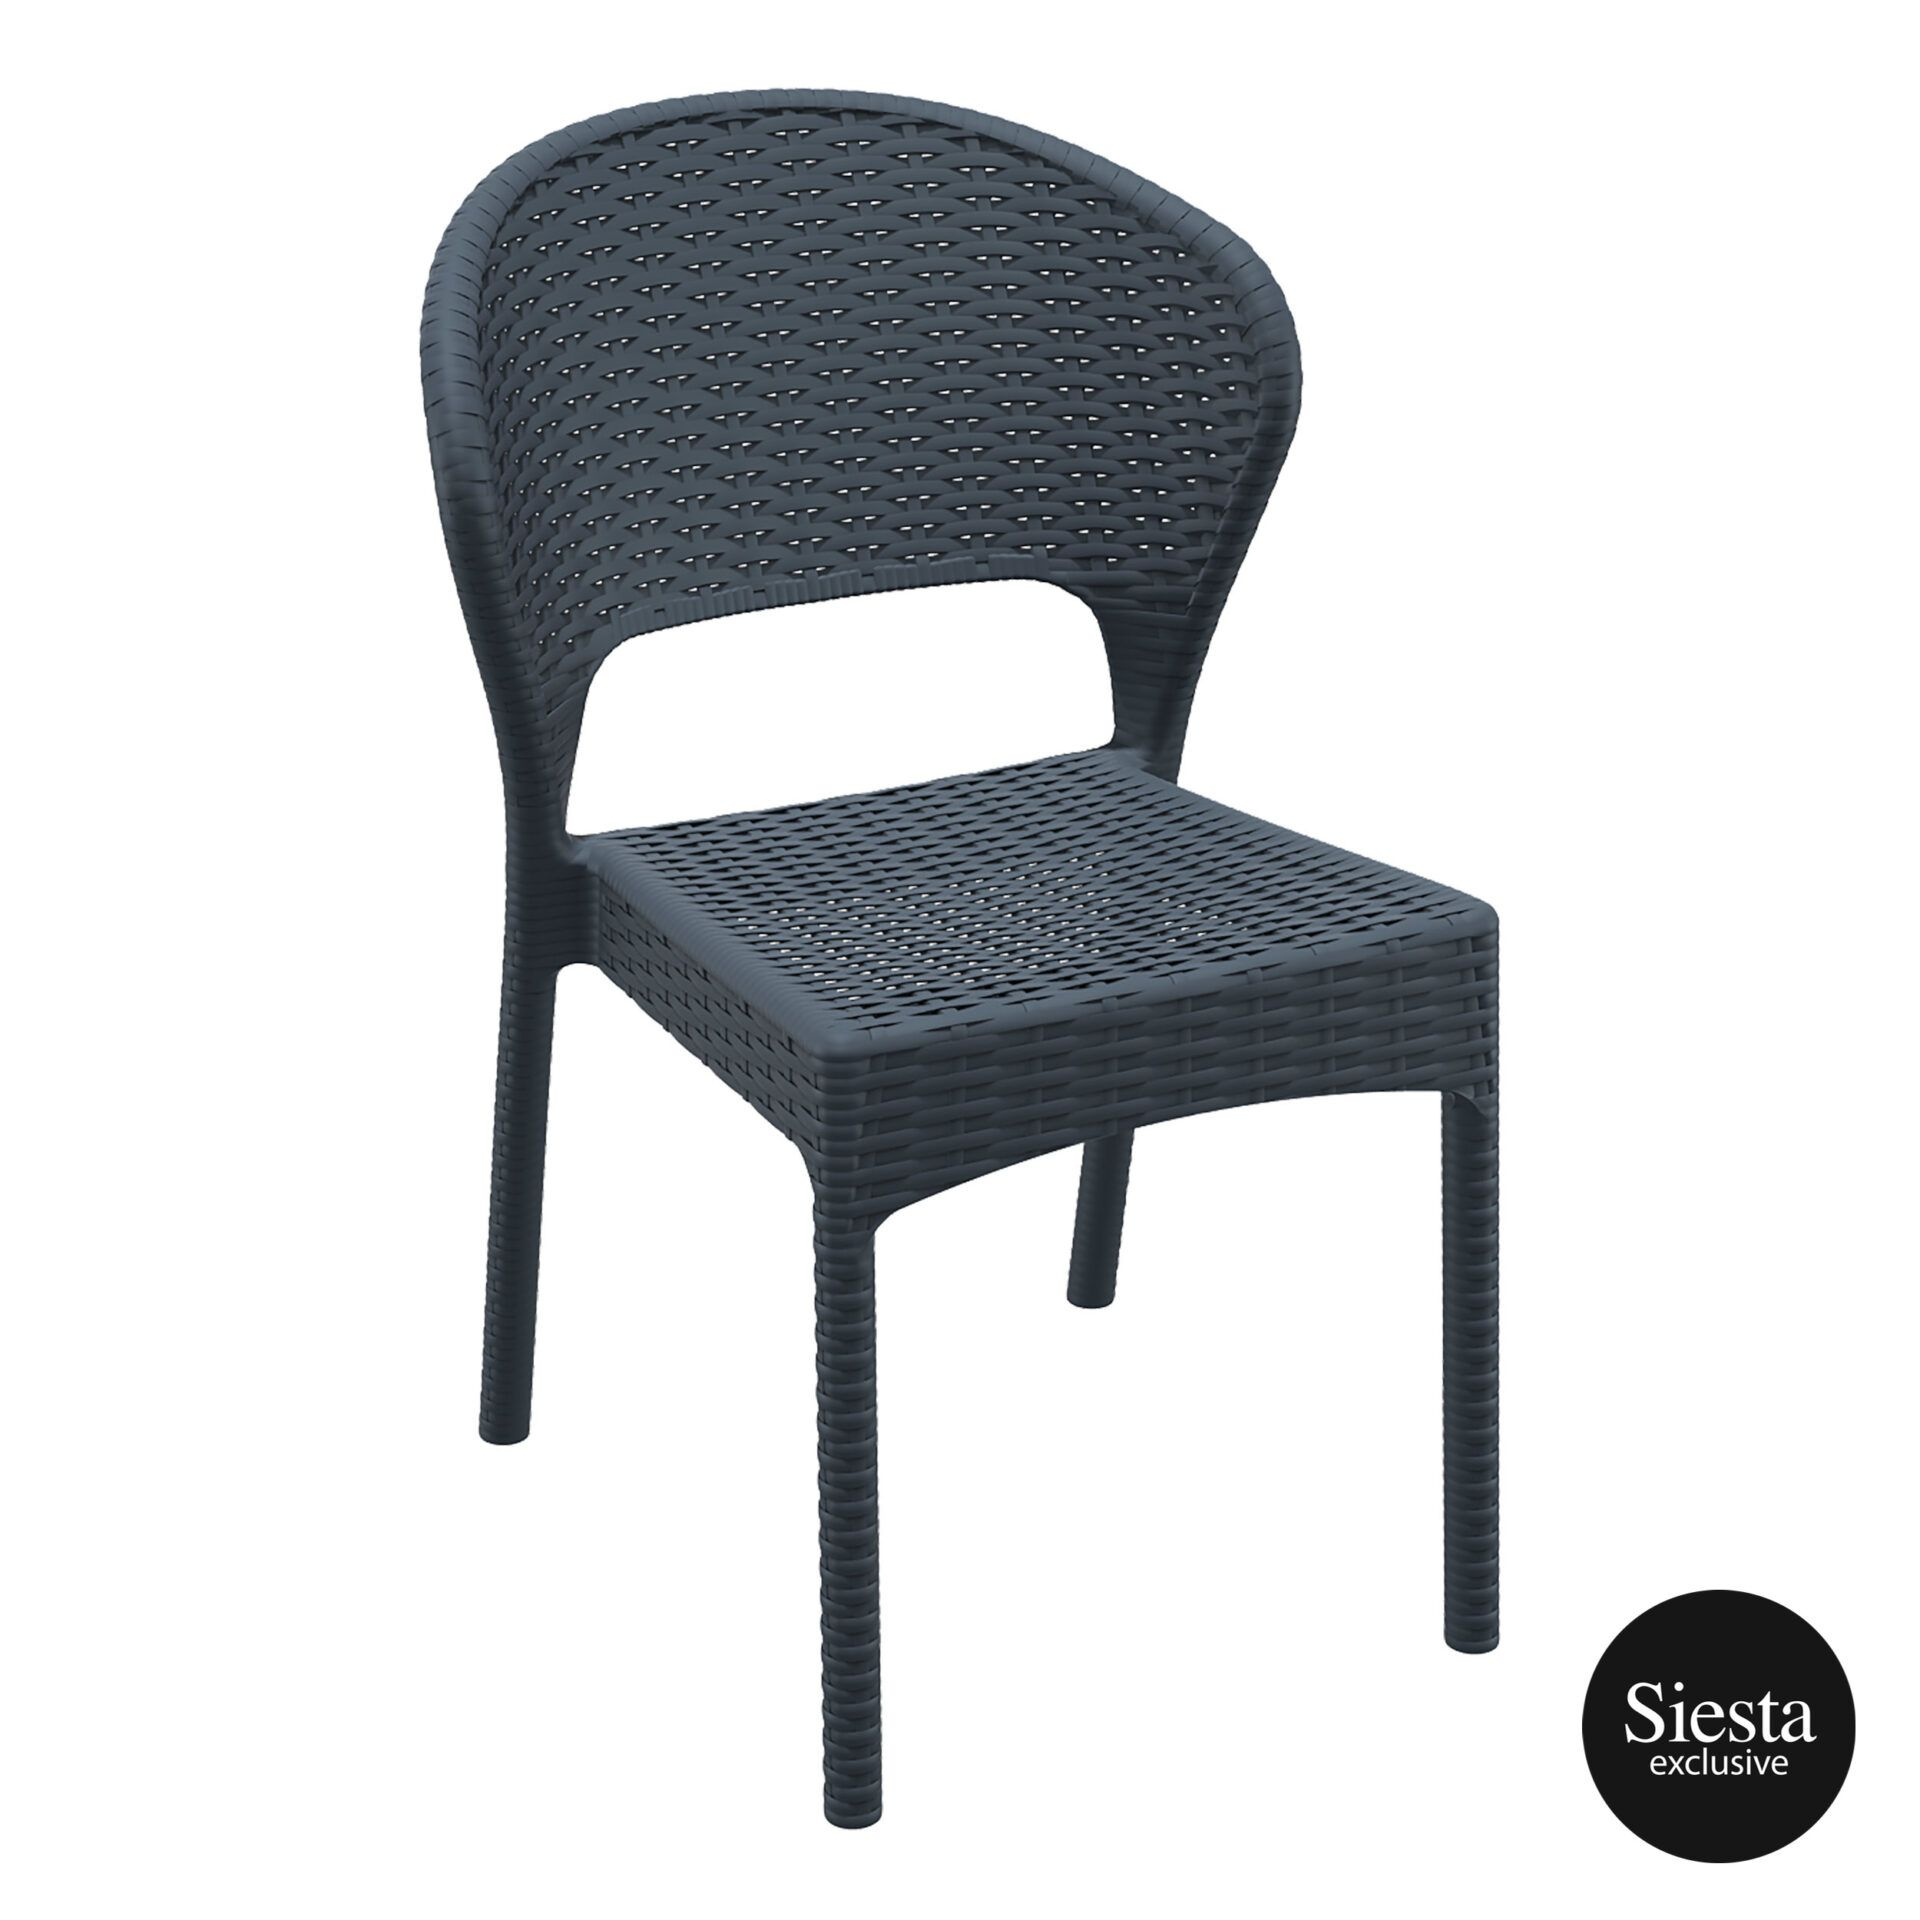 resin rattan outdoor daytona chair darkgrey front side 1